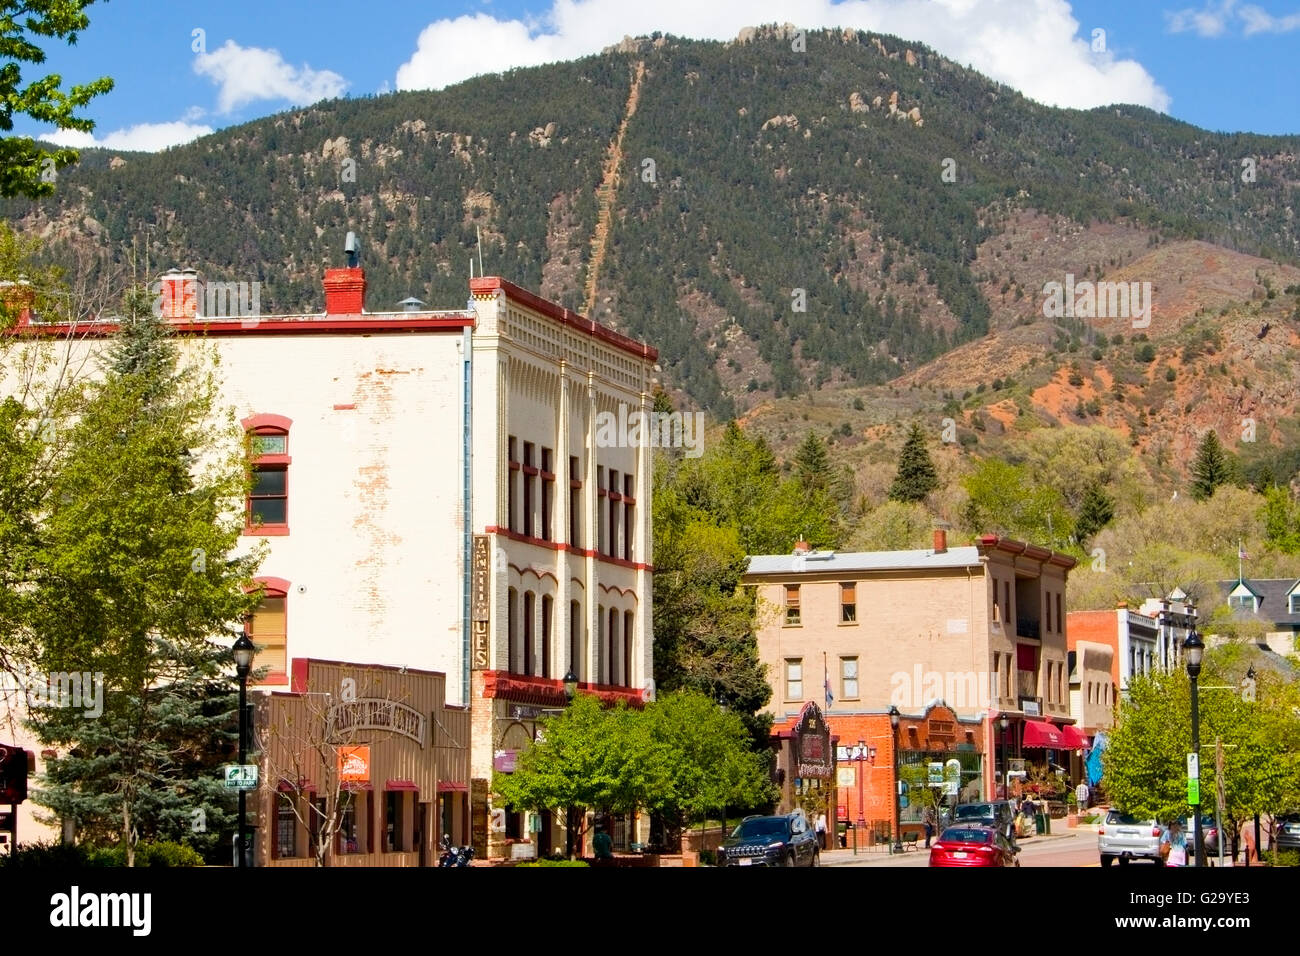 Manitou Avenue and the Incline - Stock Image